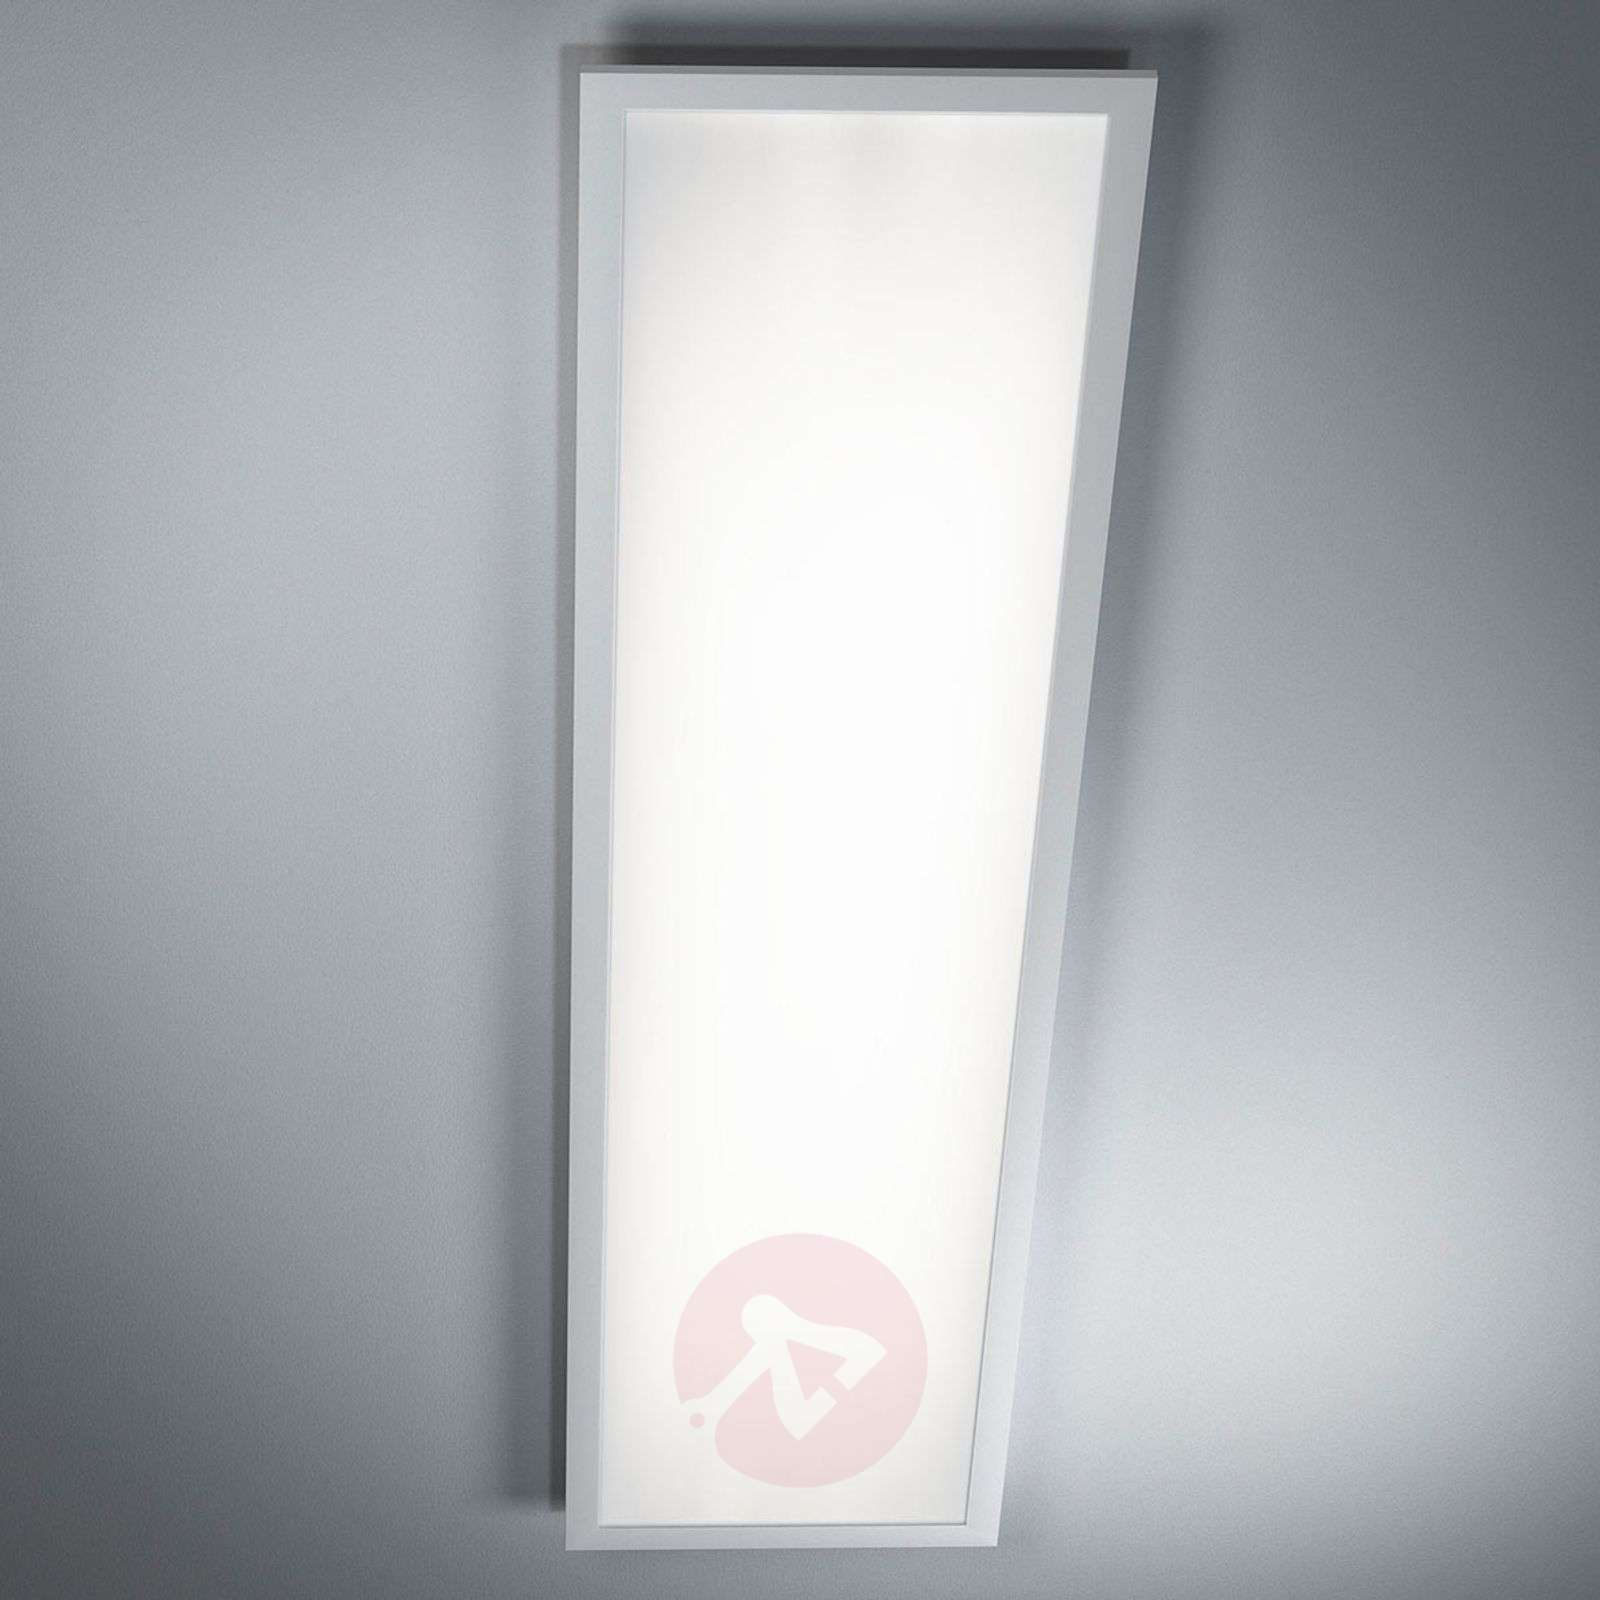 Potente pannello LED Planon Plus-7261230-01